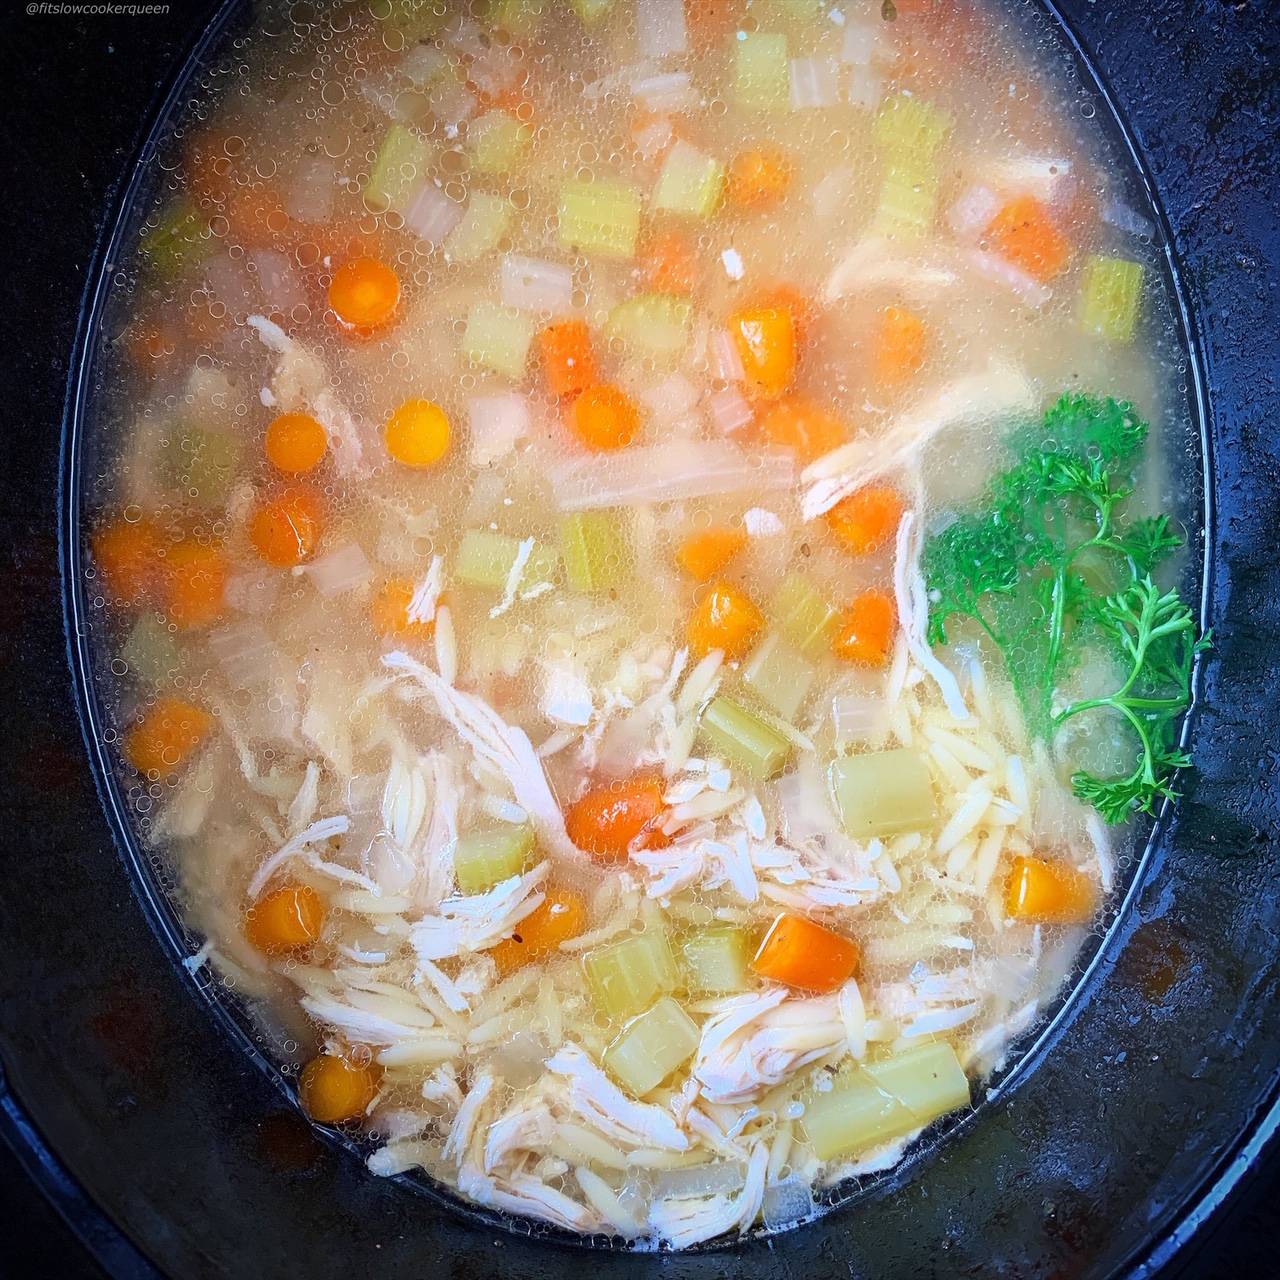 Lemon chicken and orzo soup is a simple soup that can be enjoyed any time of the year. Make this citrus flavored dish in your slow cooker or Instant Pot.